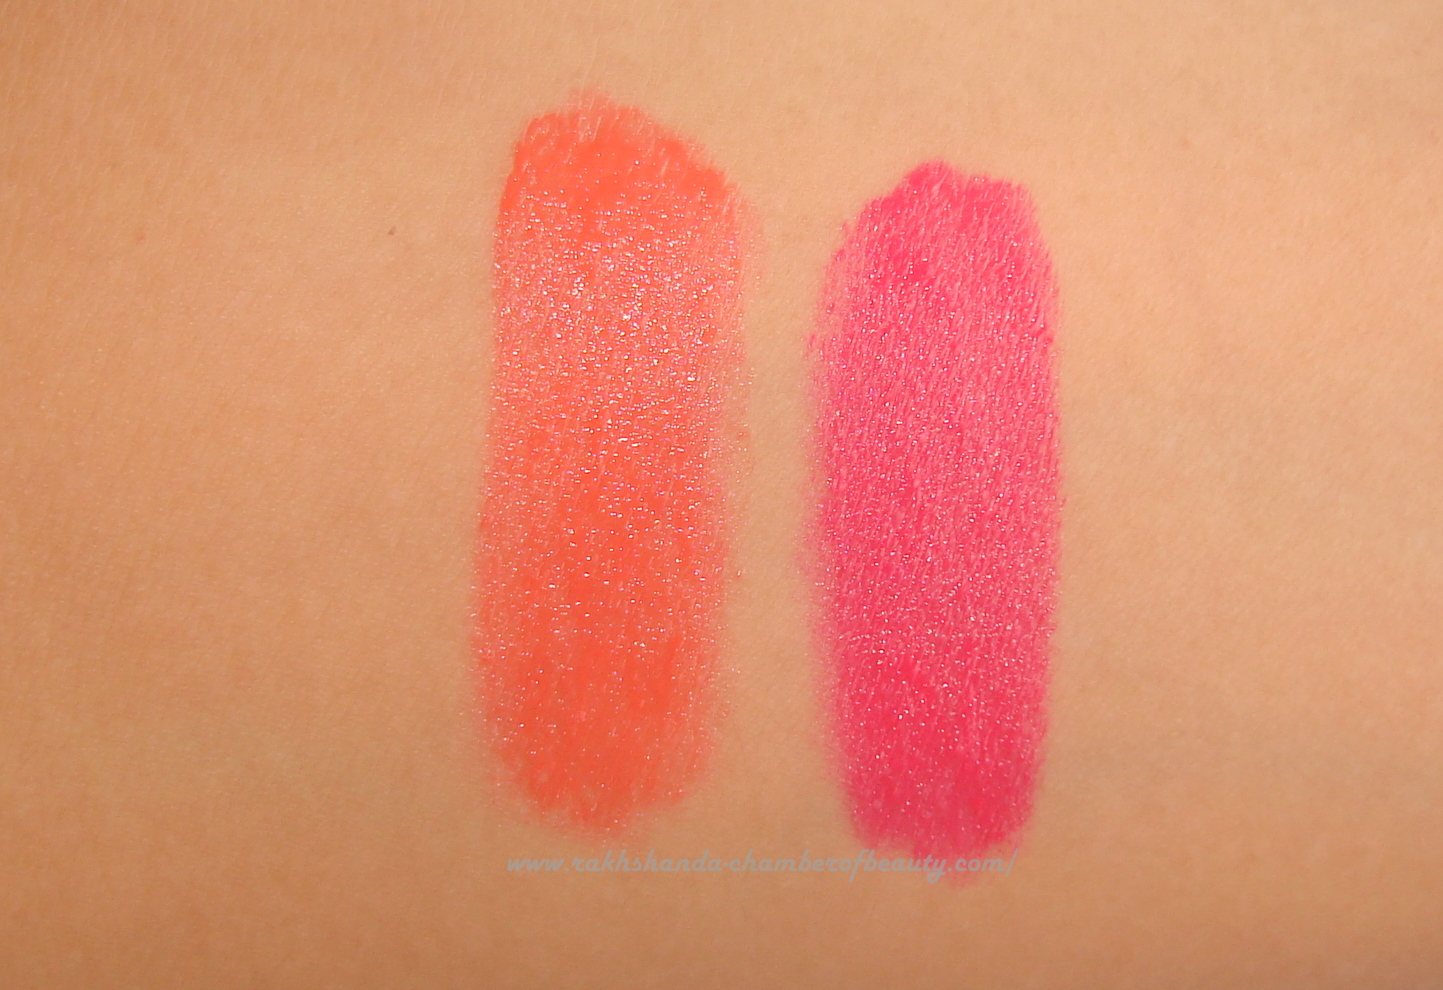 Maybelline NY Color Show Lipsticks- Review, swatches & price in India, Intense Fashionable lipcolor, Fuchsia flare, Orange Icon, Indian Beauty blogger